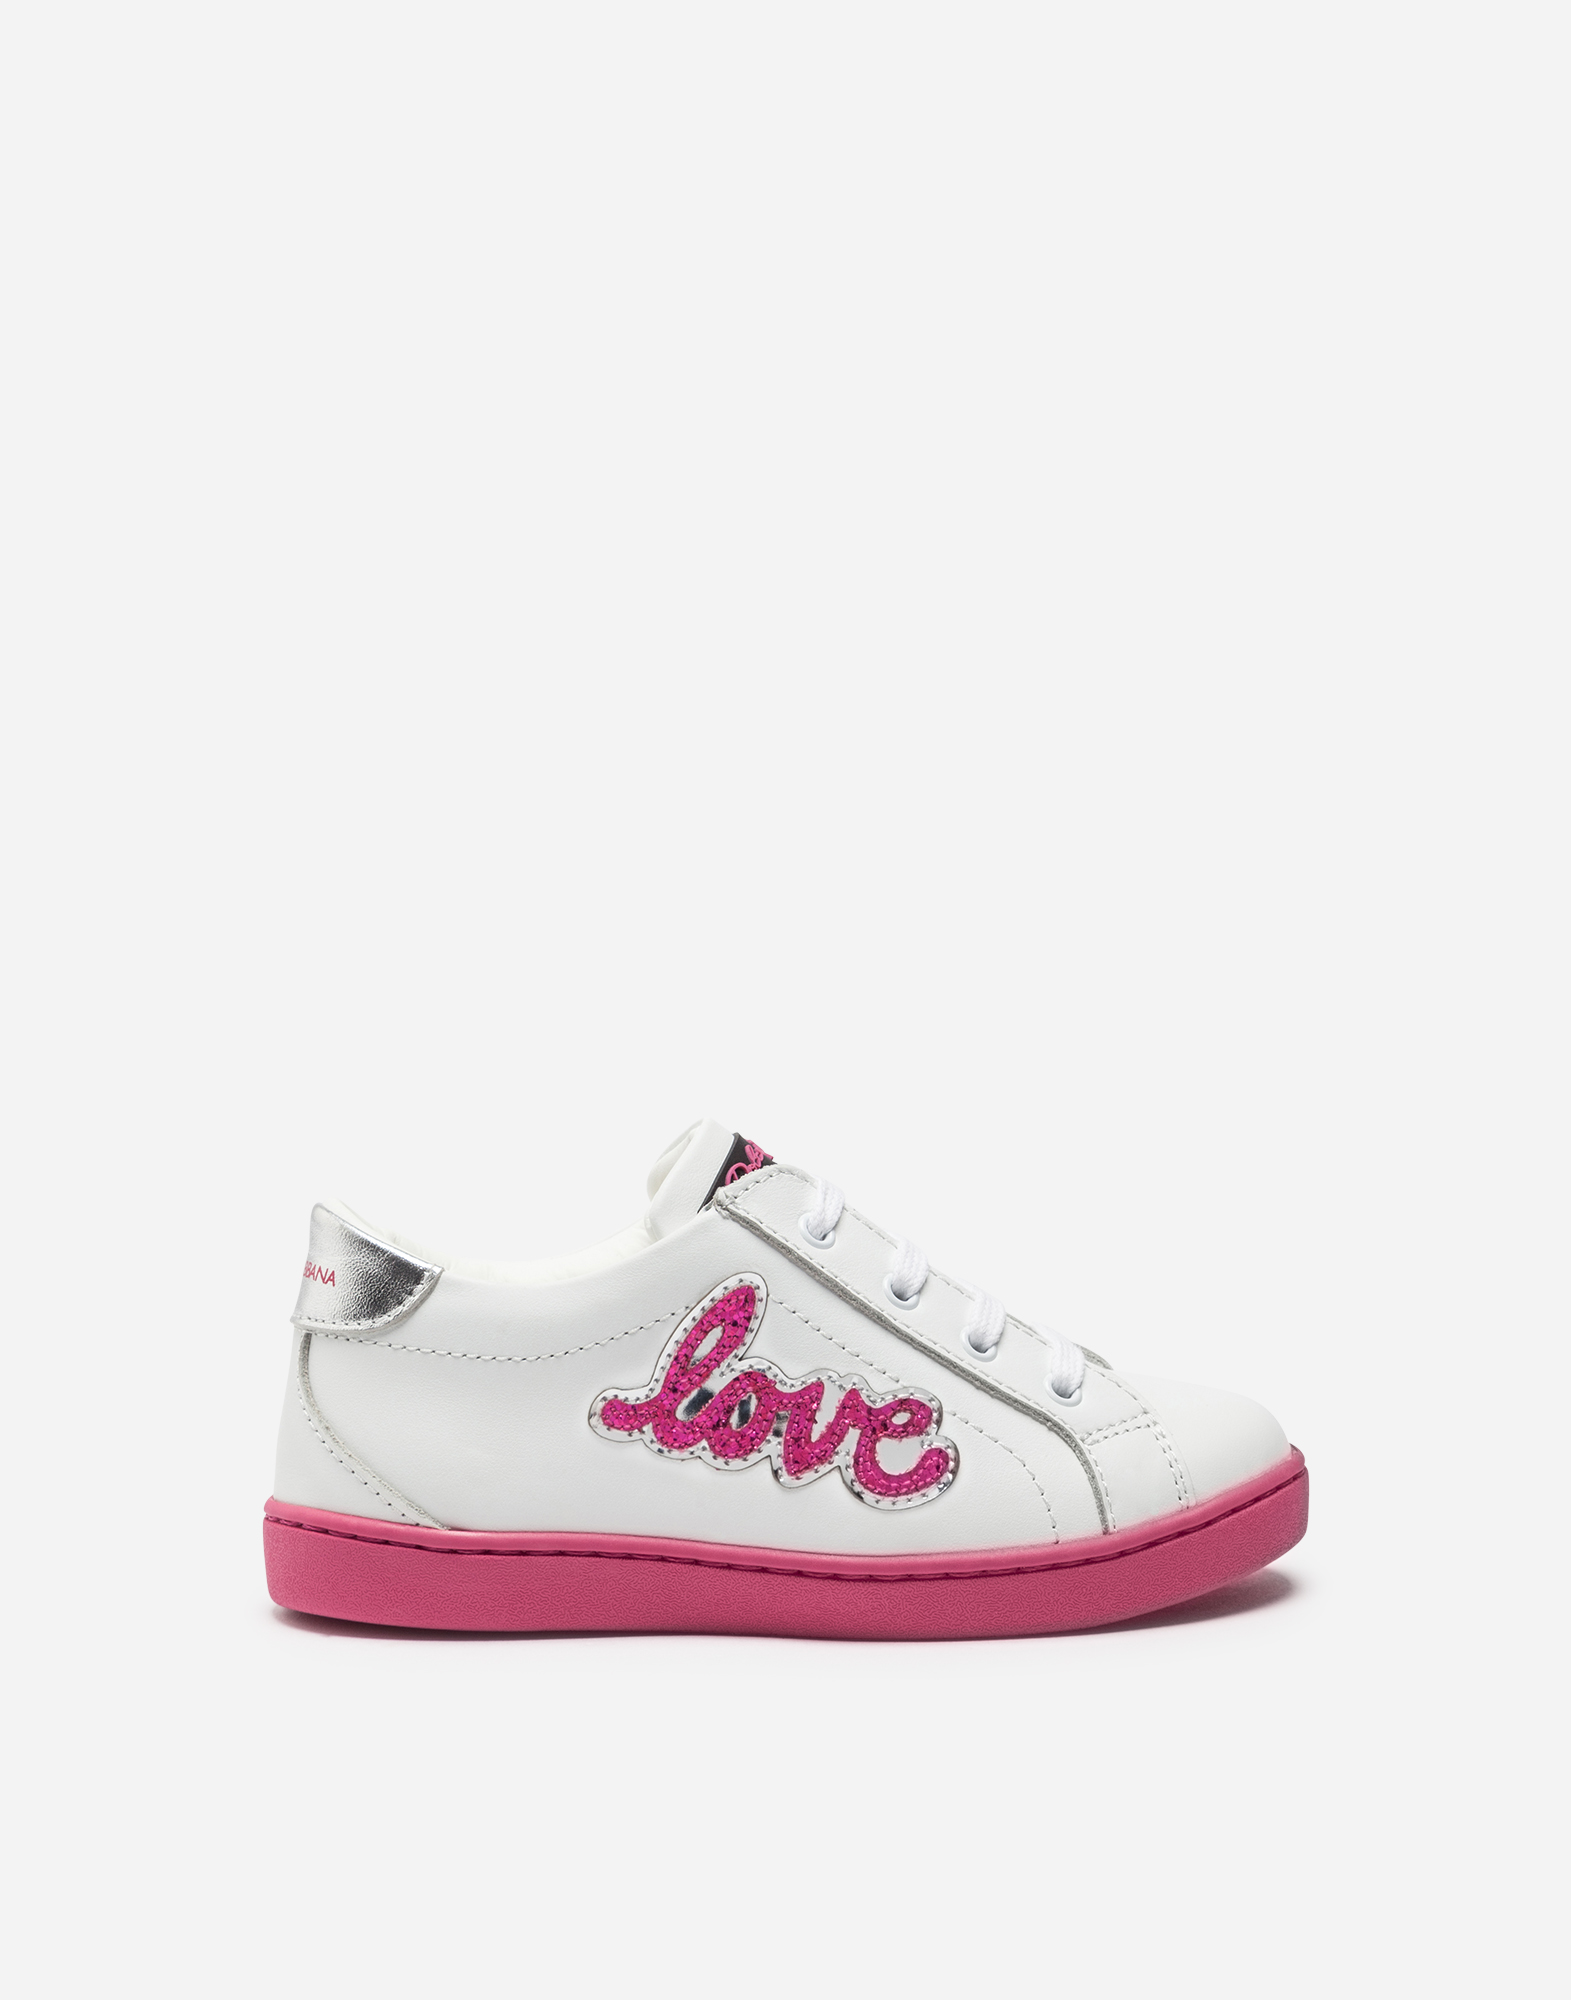 Dolce & Gabbana LEATHER SNEAKERS WITH PATCHES